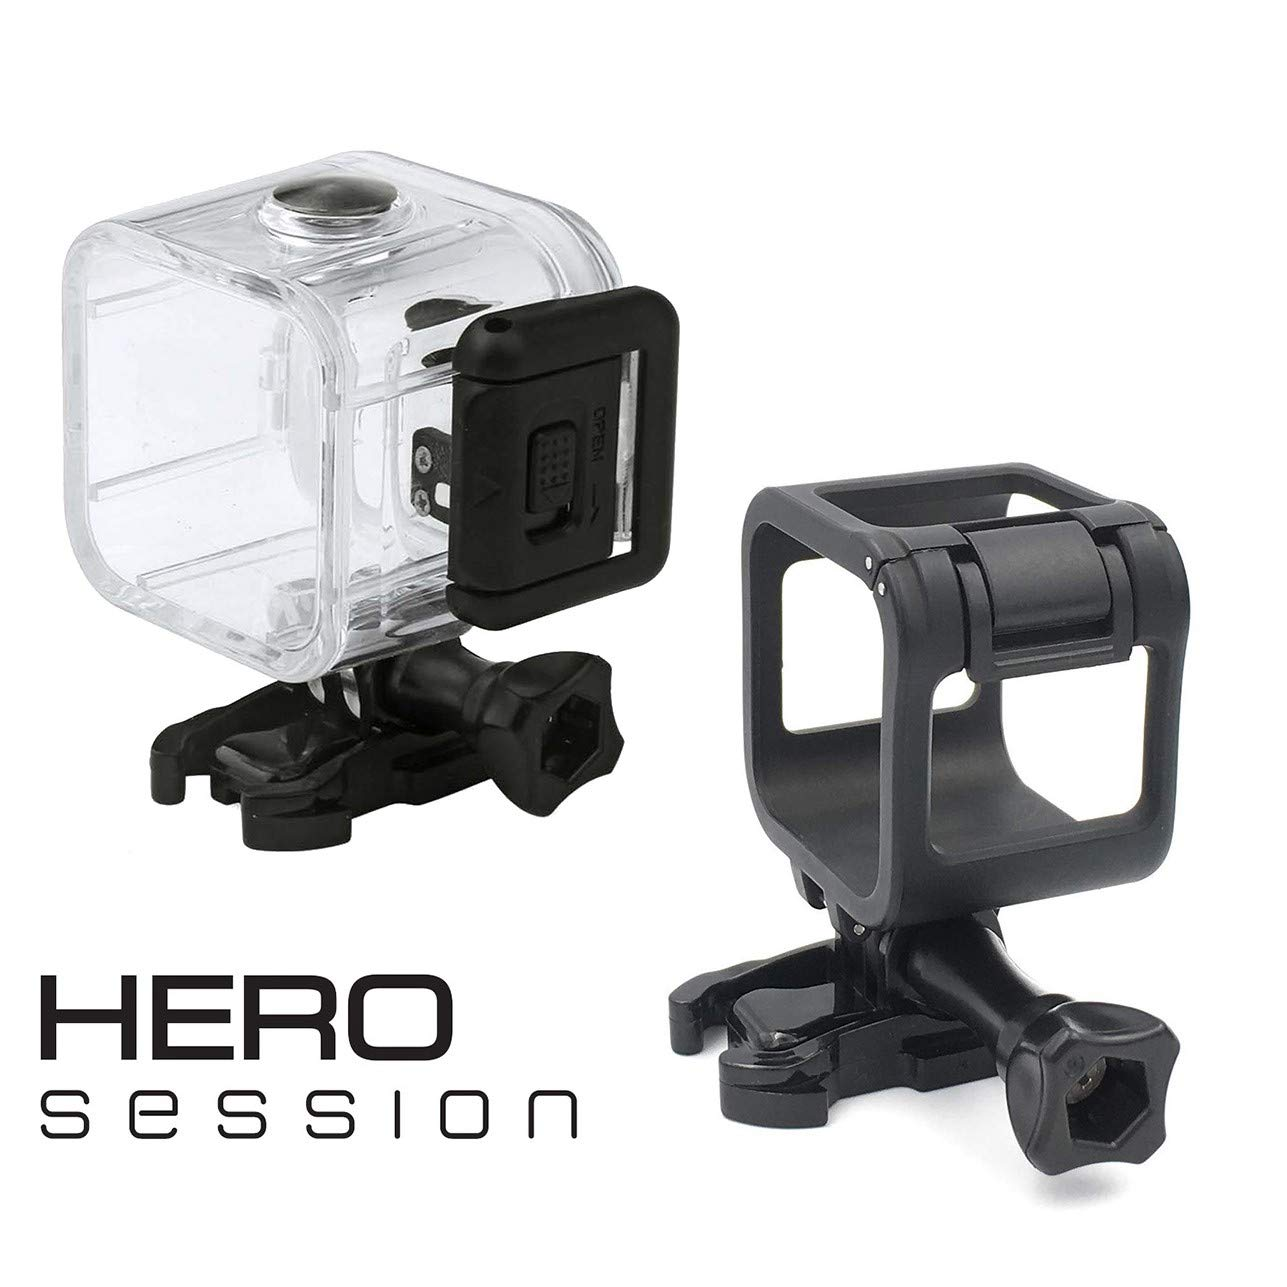 RAXPY Combination of Waterproof Housing Plus a Frame for GoPro Session Black, The housing is a Protective Hard case for Underwater Photography up to ...